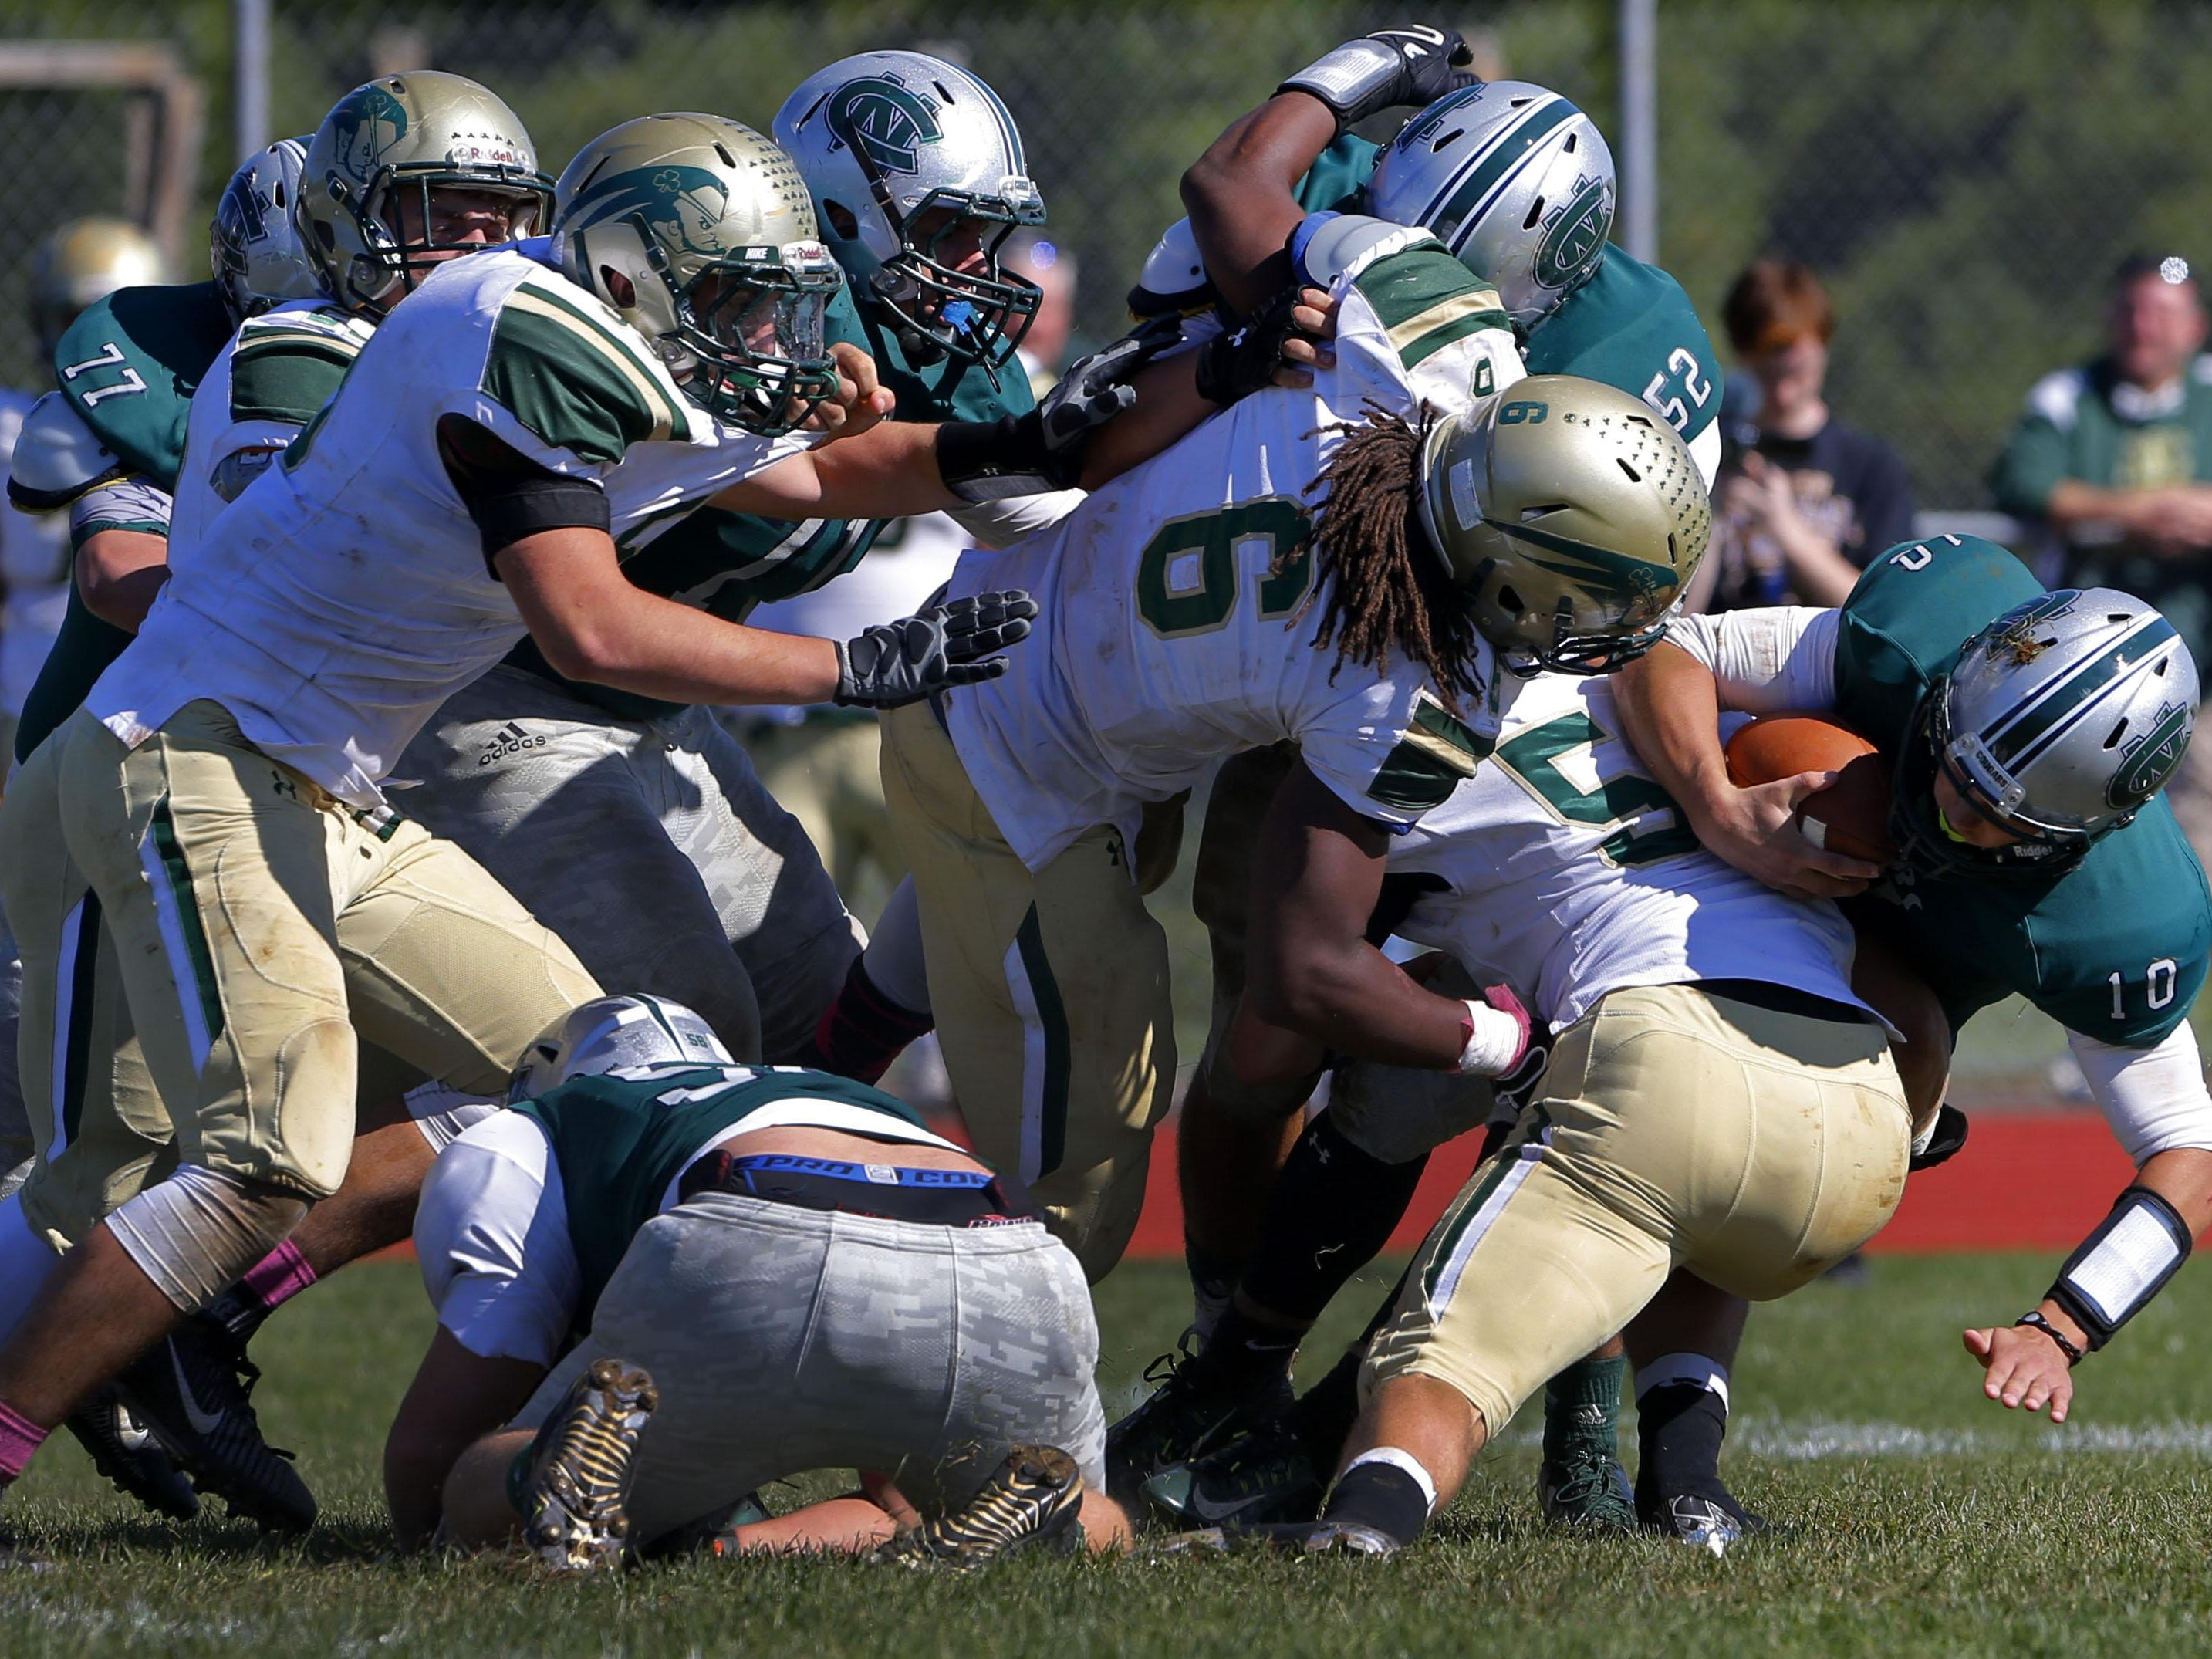 Colts Neck quarterback hayden Volk (10 ) is sacked by Red Bank Catholic defenders during game at Colts Neck High School, Colts Neck,NJ. Saturday, October 10, 2015.